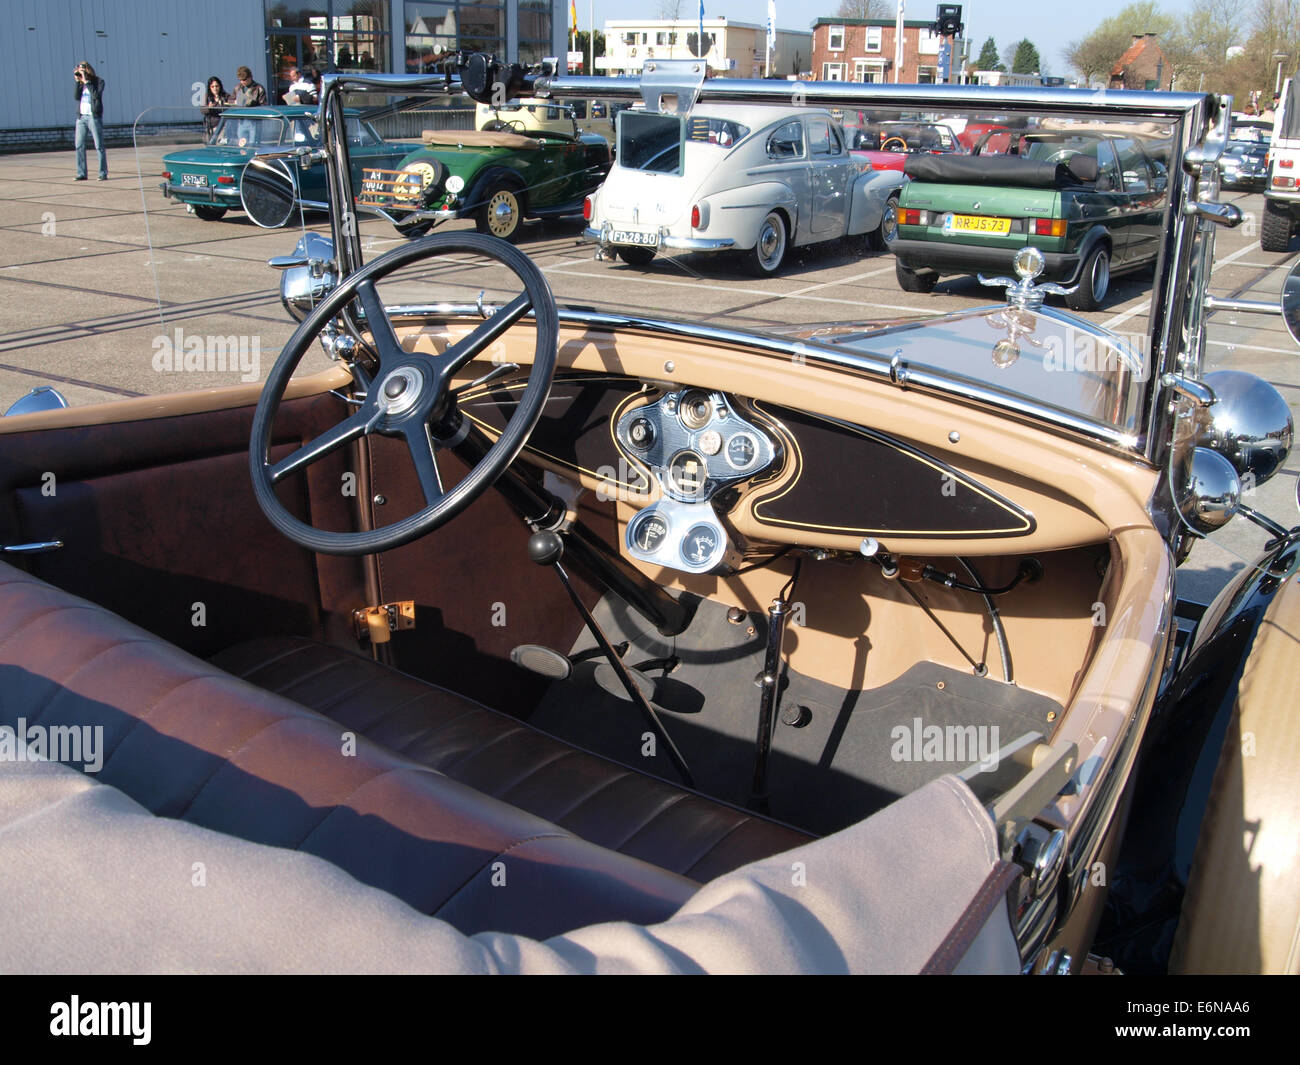 Ford A (1931), Dutch licence registration 75-80-EH, pic6 - Stock Image